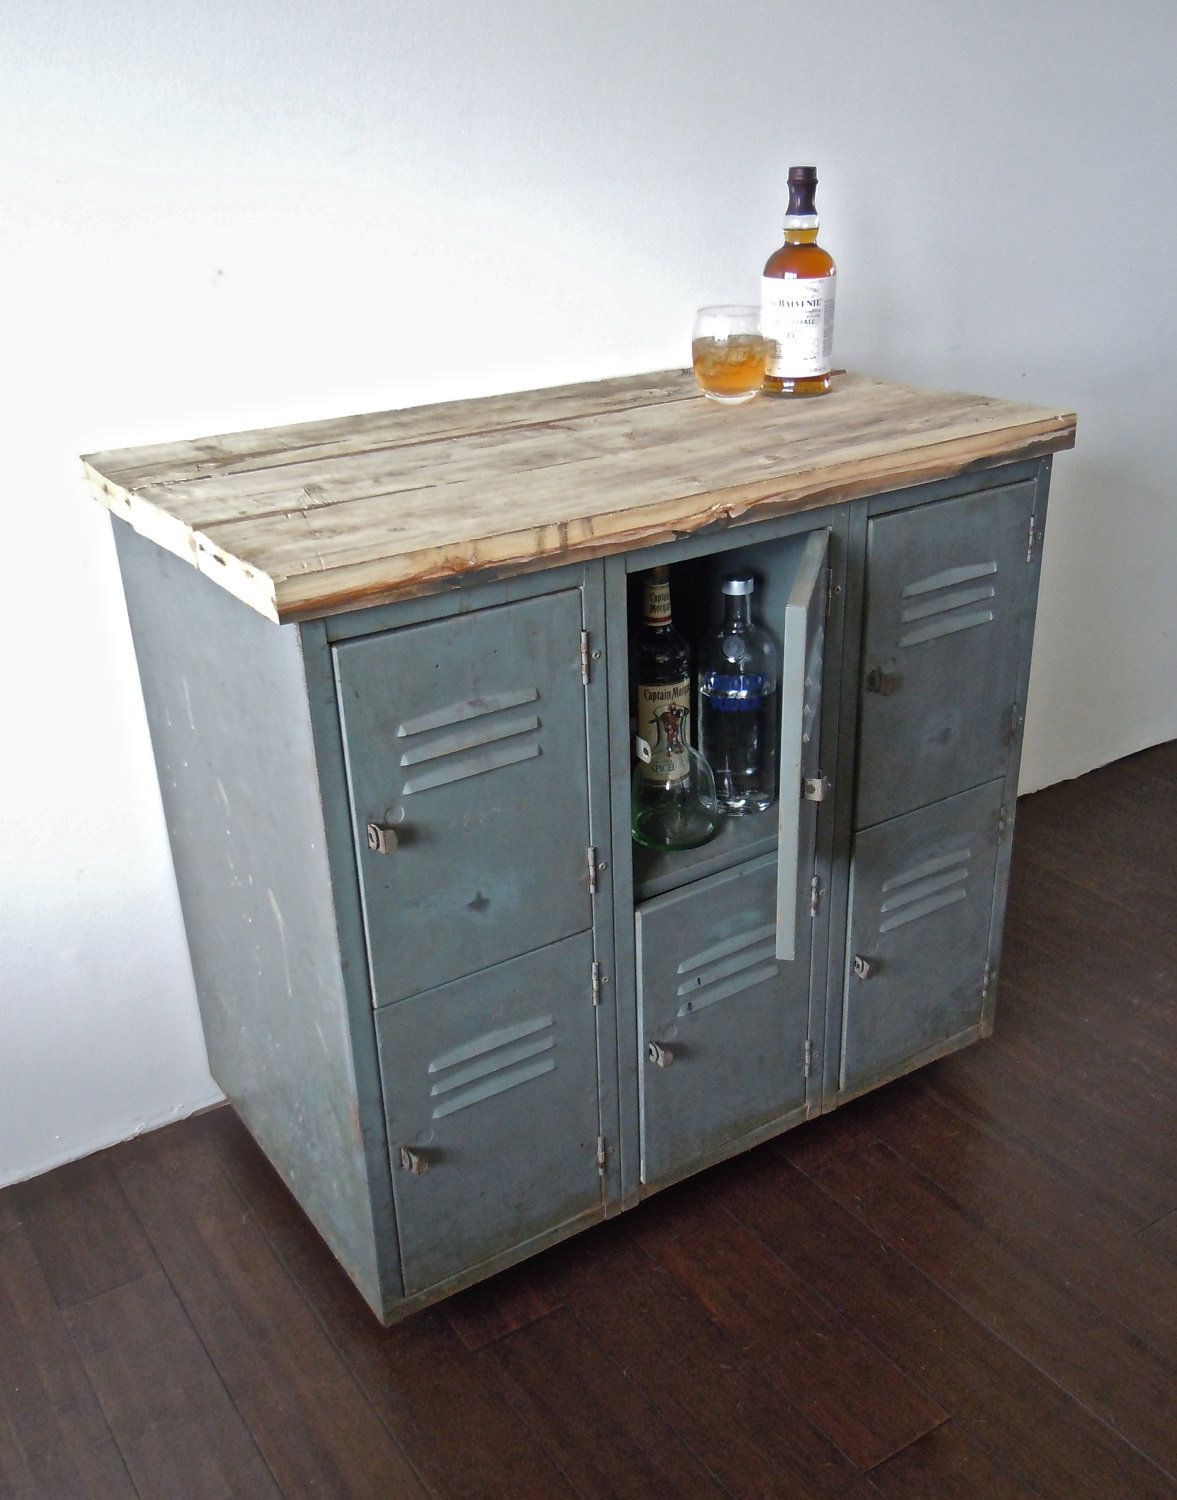 vintage metal lockers with reclaimed wood top on casters industrial bar storage cabinet kitchen island 600 00 via etsy